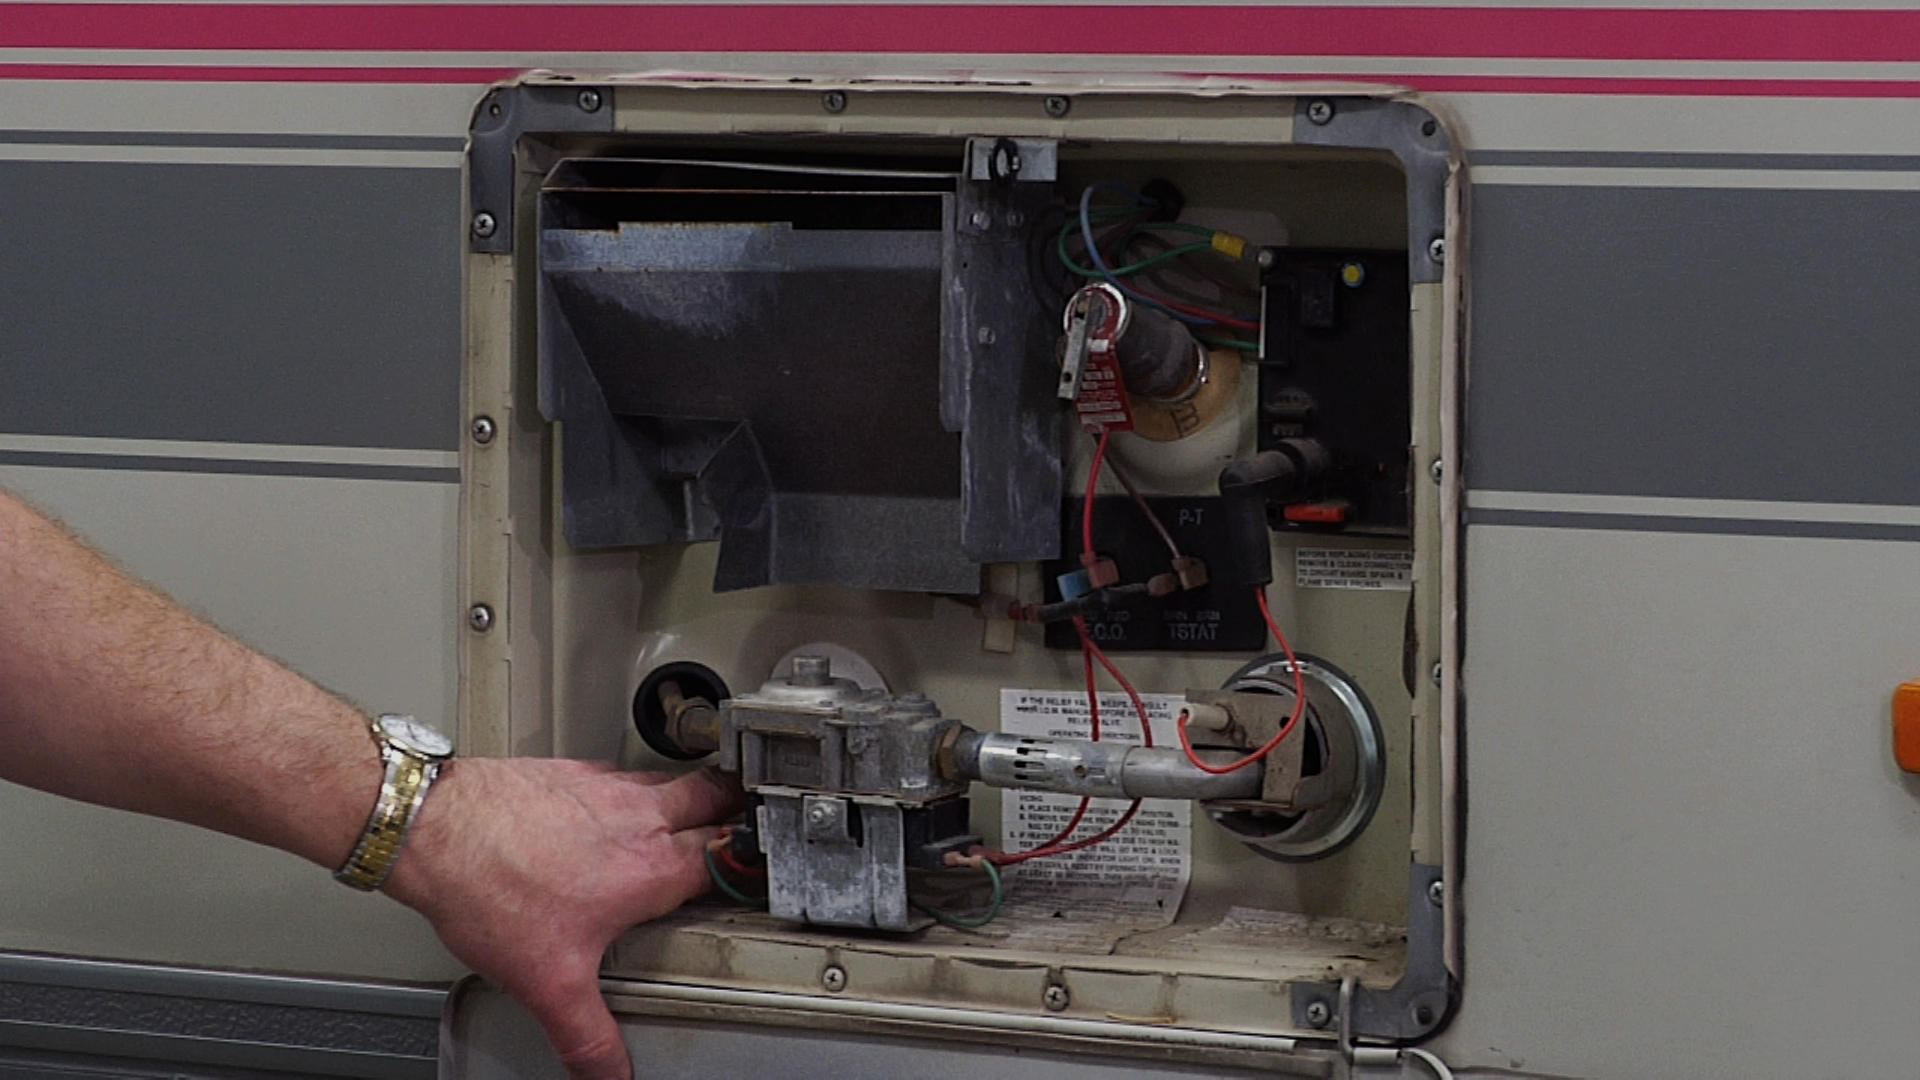 wiring diagram for motorhome automotive colour codes rv water heater overview and troubleshoot | repair club